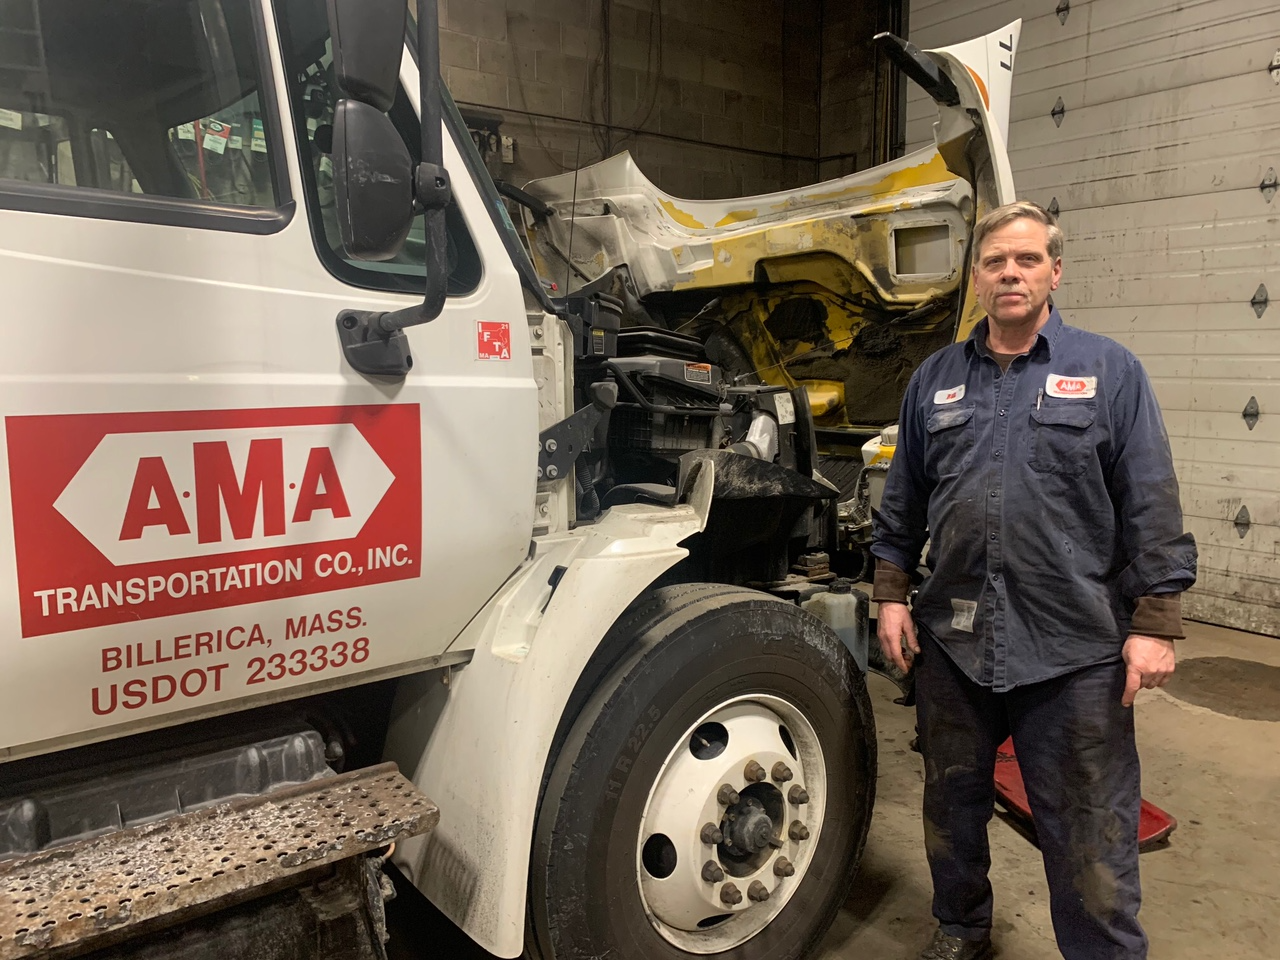 Bill Loyd, fleet manager for AMA Transportation, brings decades of experience and a passion for getting the job done correctly as well.